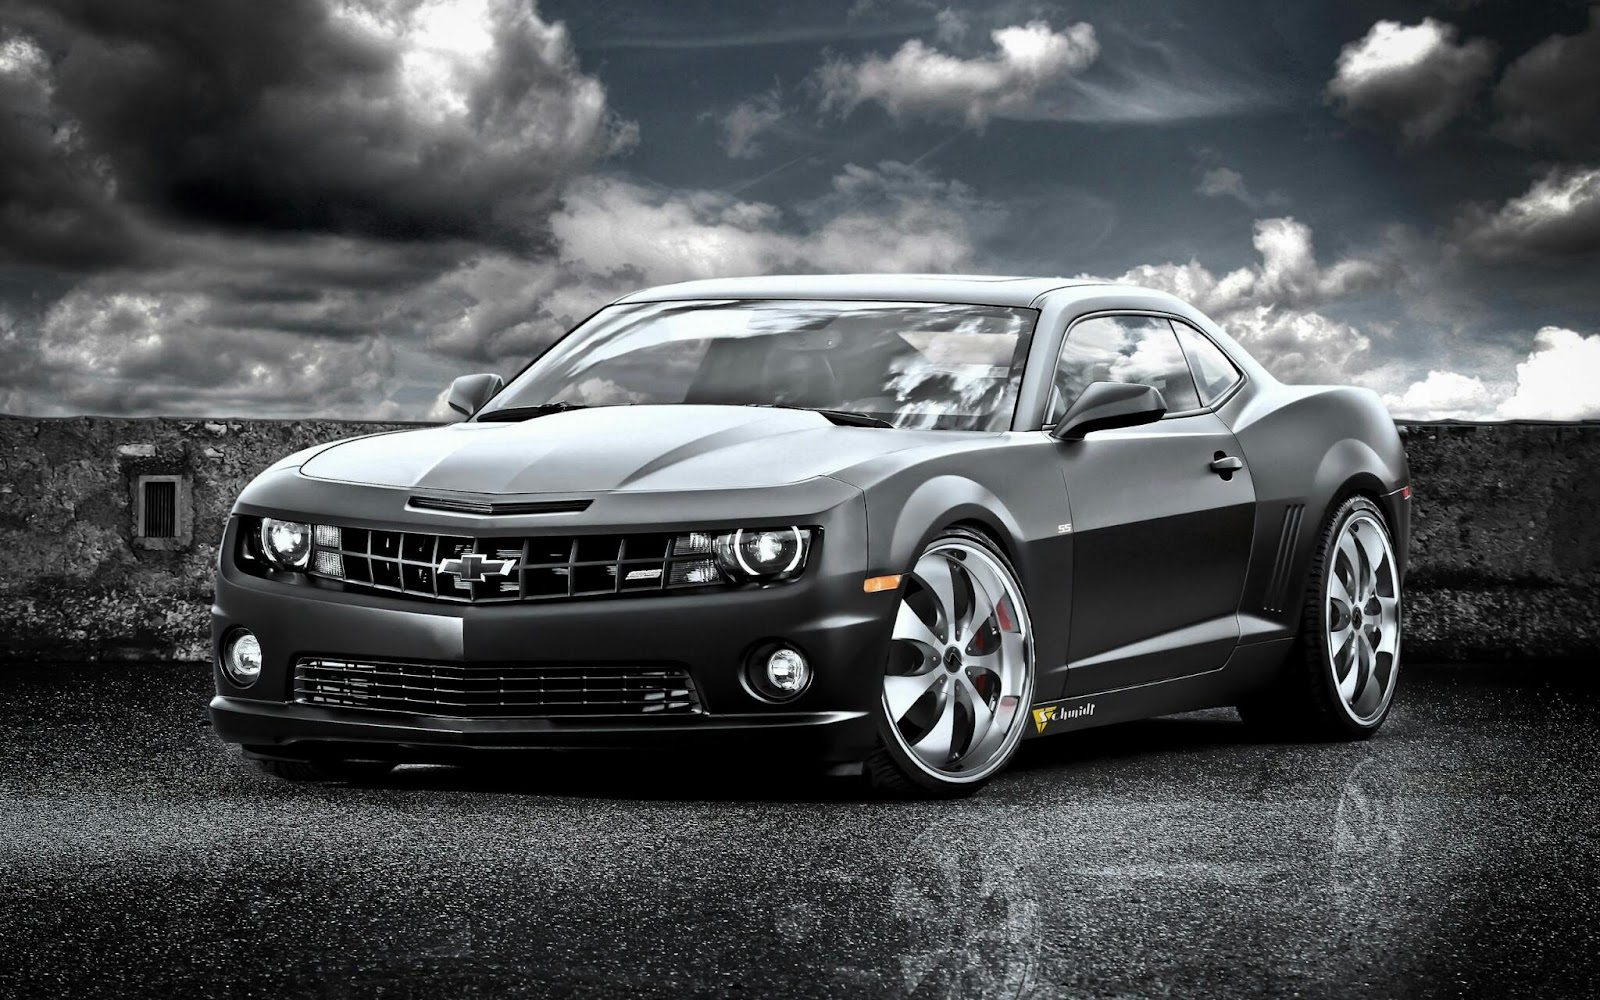 Hd wallpaper editing - Hd Background Car Special Part 13 Editing Mobile World